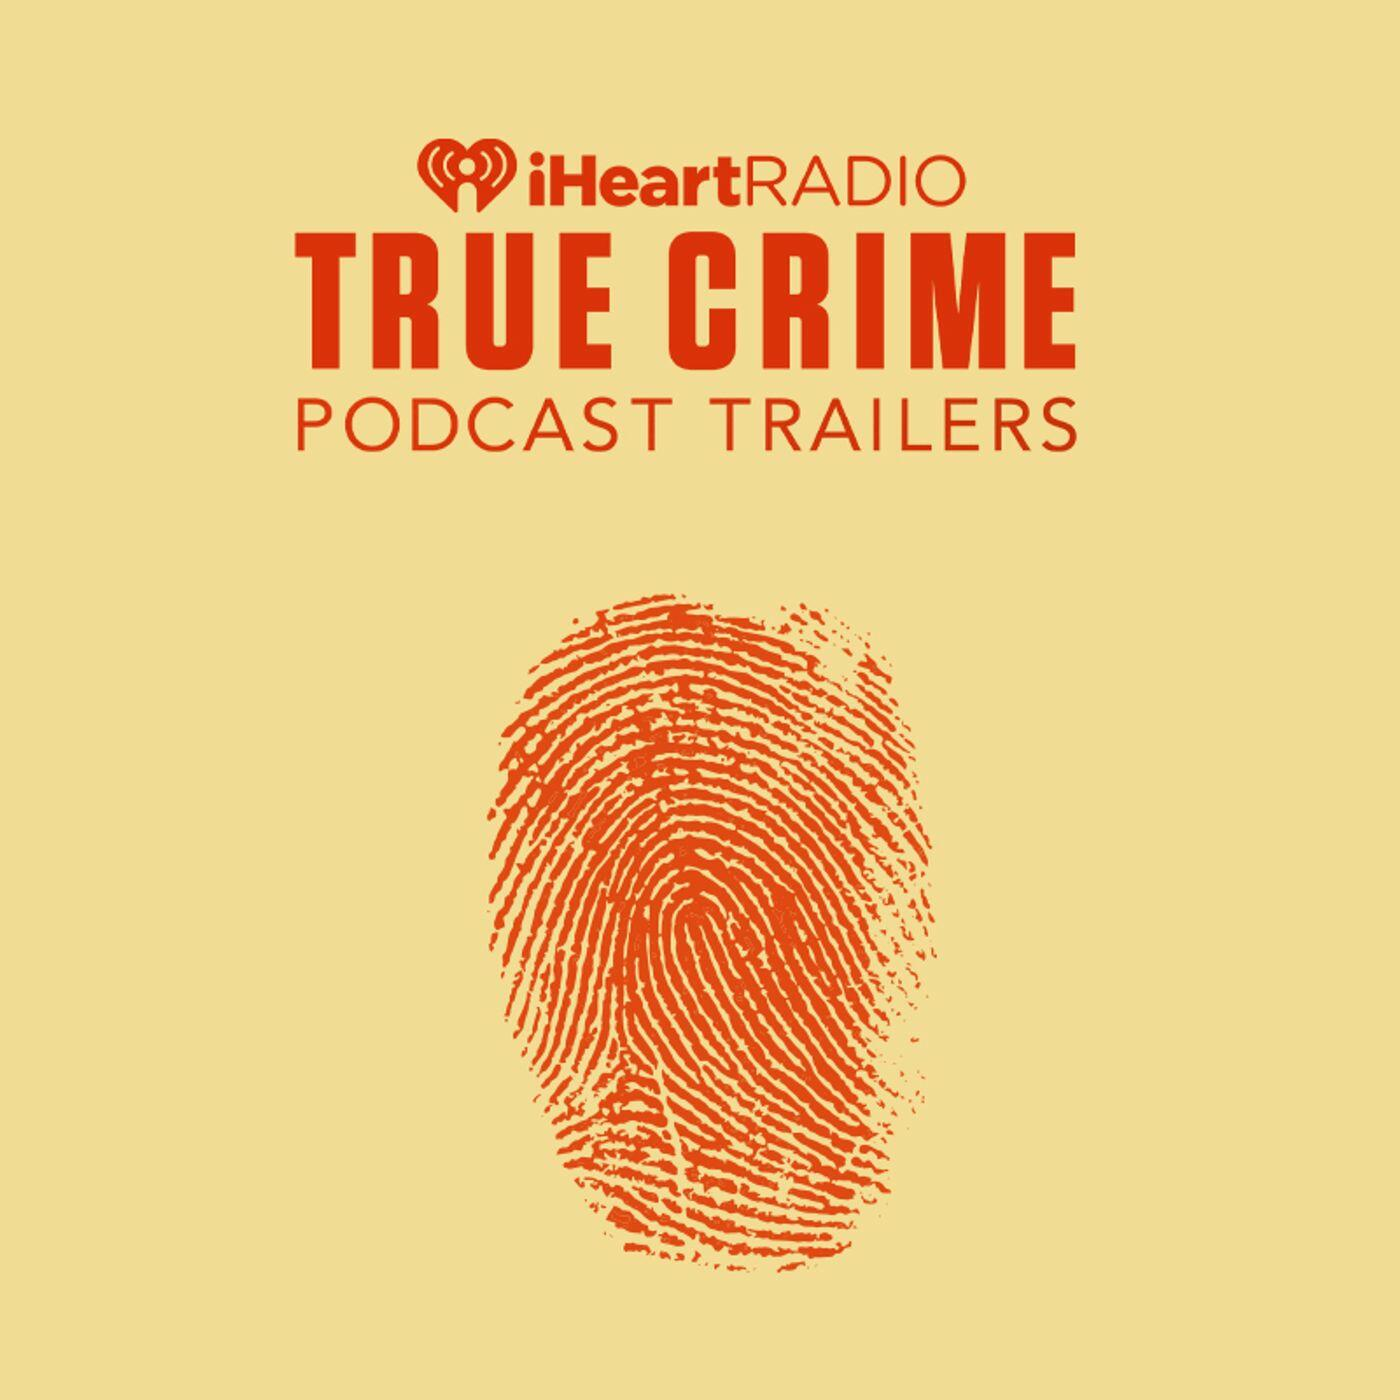 True Crime Podcast Trailers